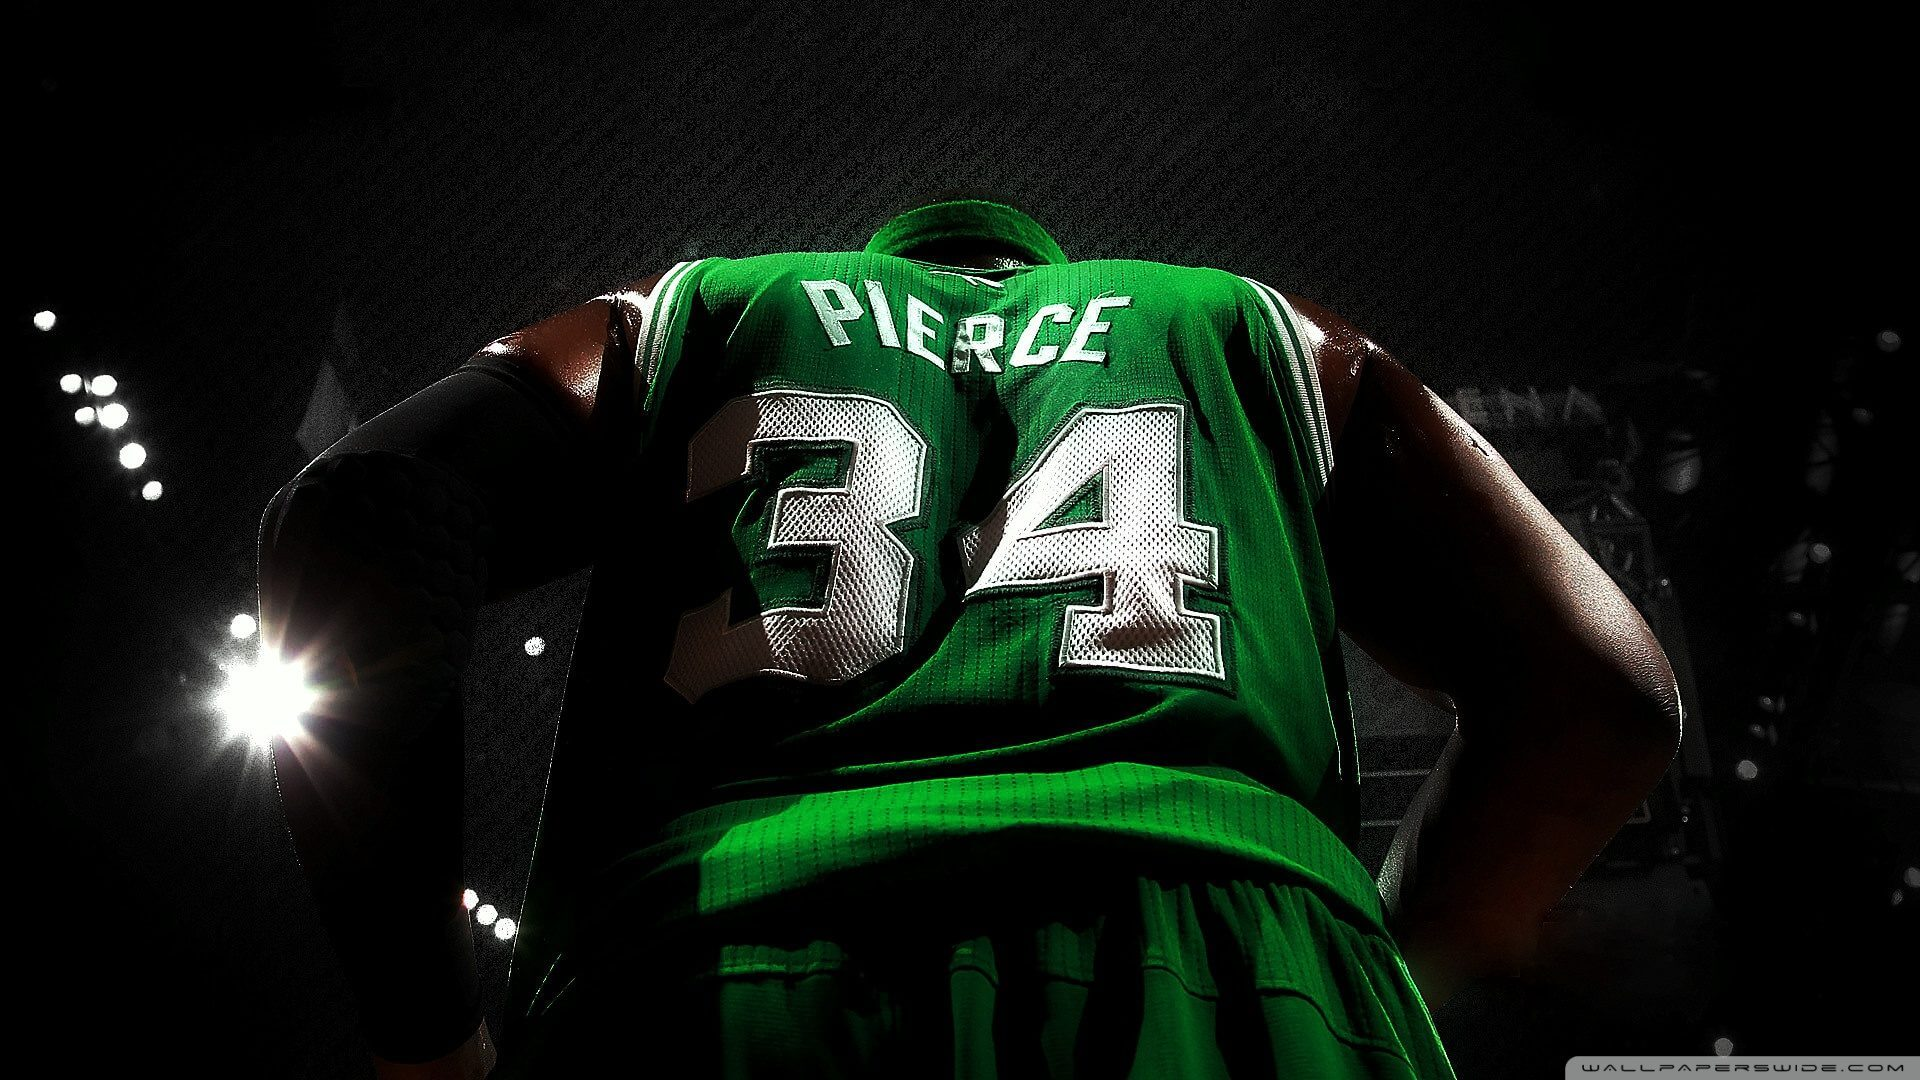 Paul Pierce trade has Boston Celtics